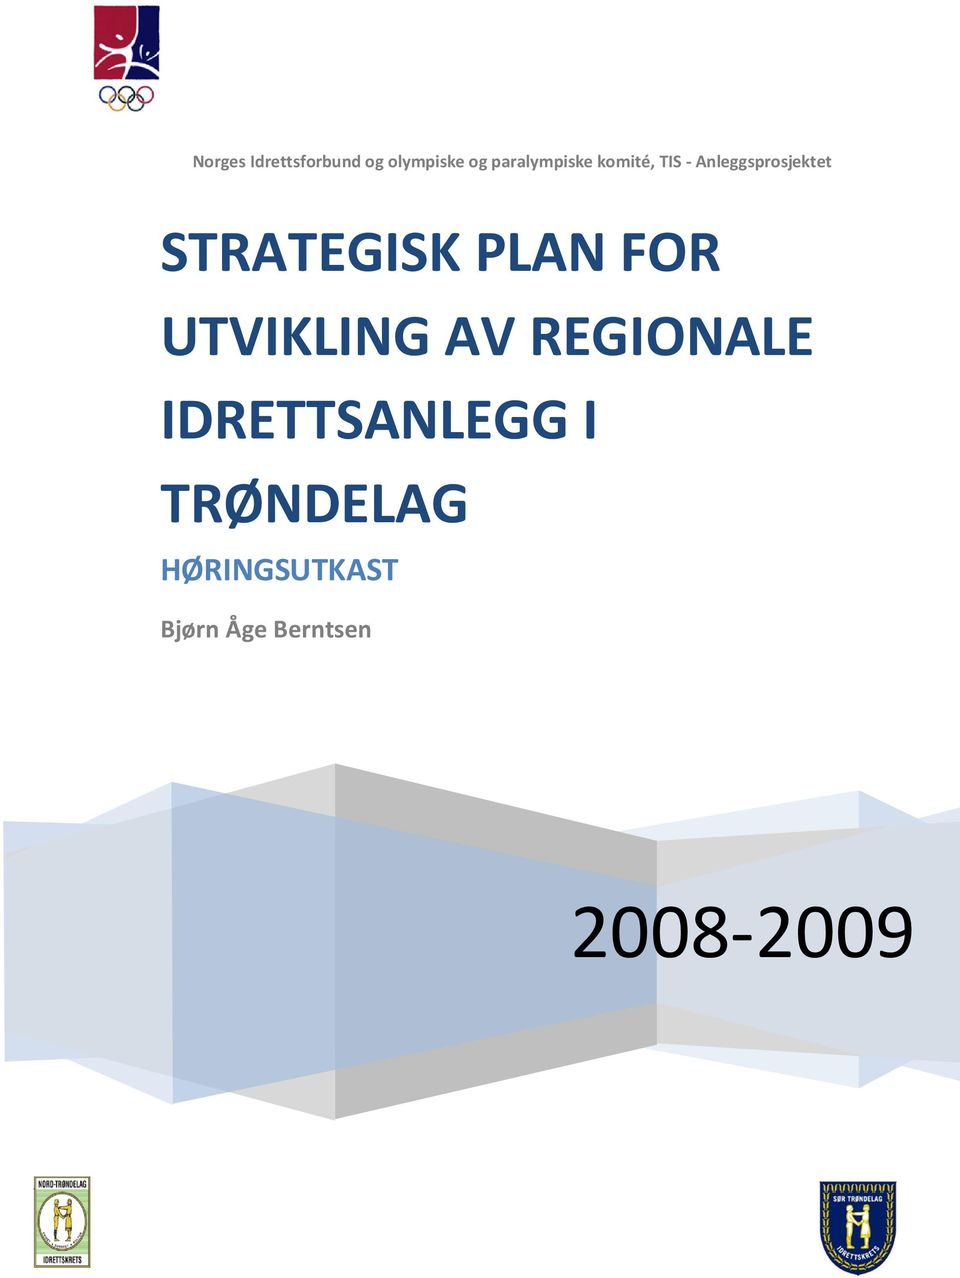 STRATEGISK PLAN FOR UTVIKLING AV REGIONALE